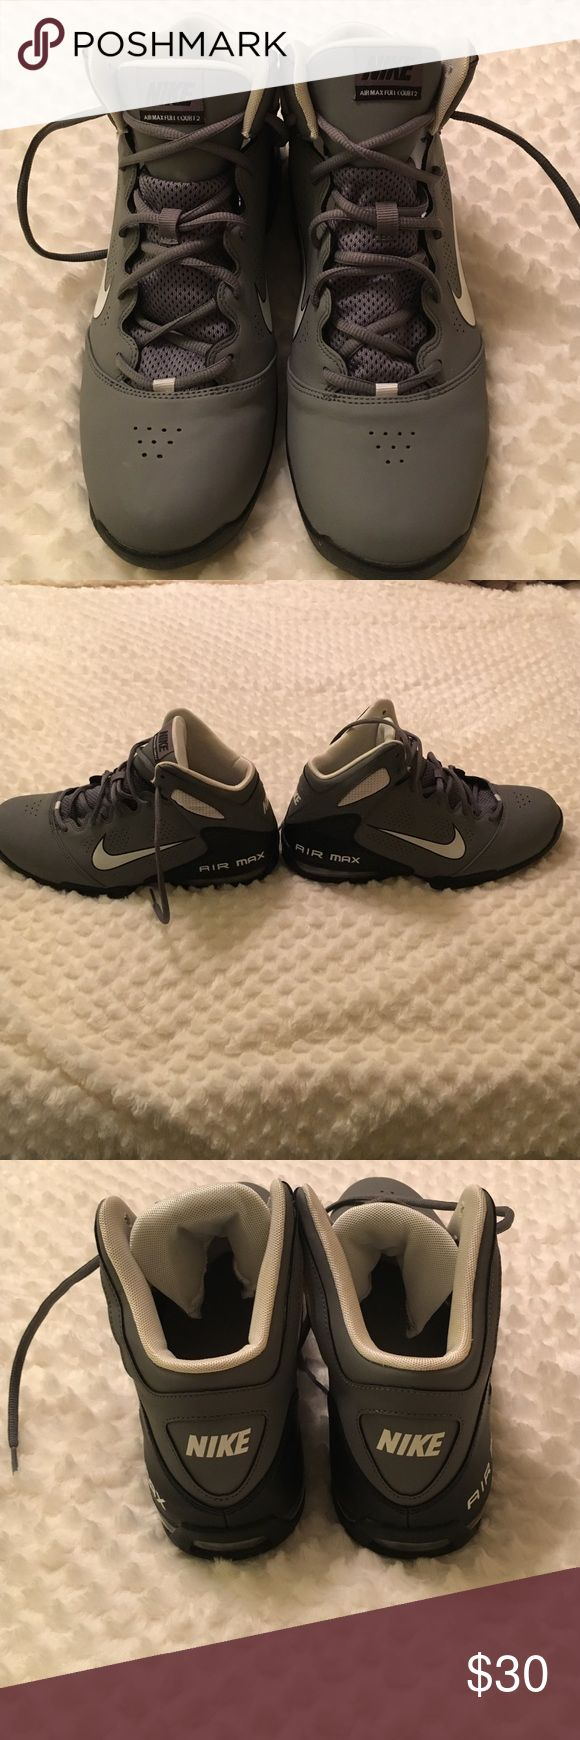 Nike AirMax Full Court 2. Size 9.5. Grey, black and white Nike AirMax Full Court 2. Very lightly used. No scuffs. Nike Shoes Sneakers